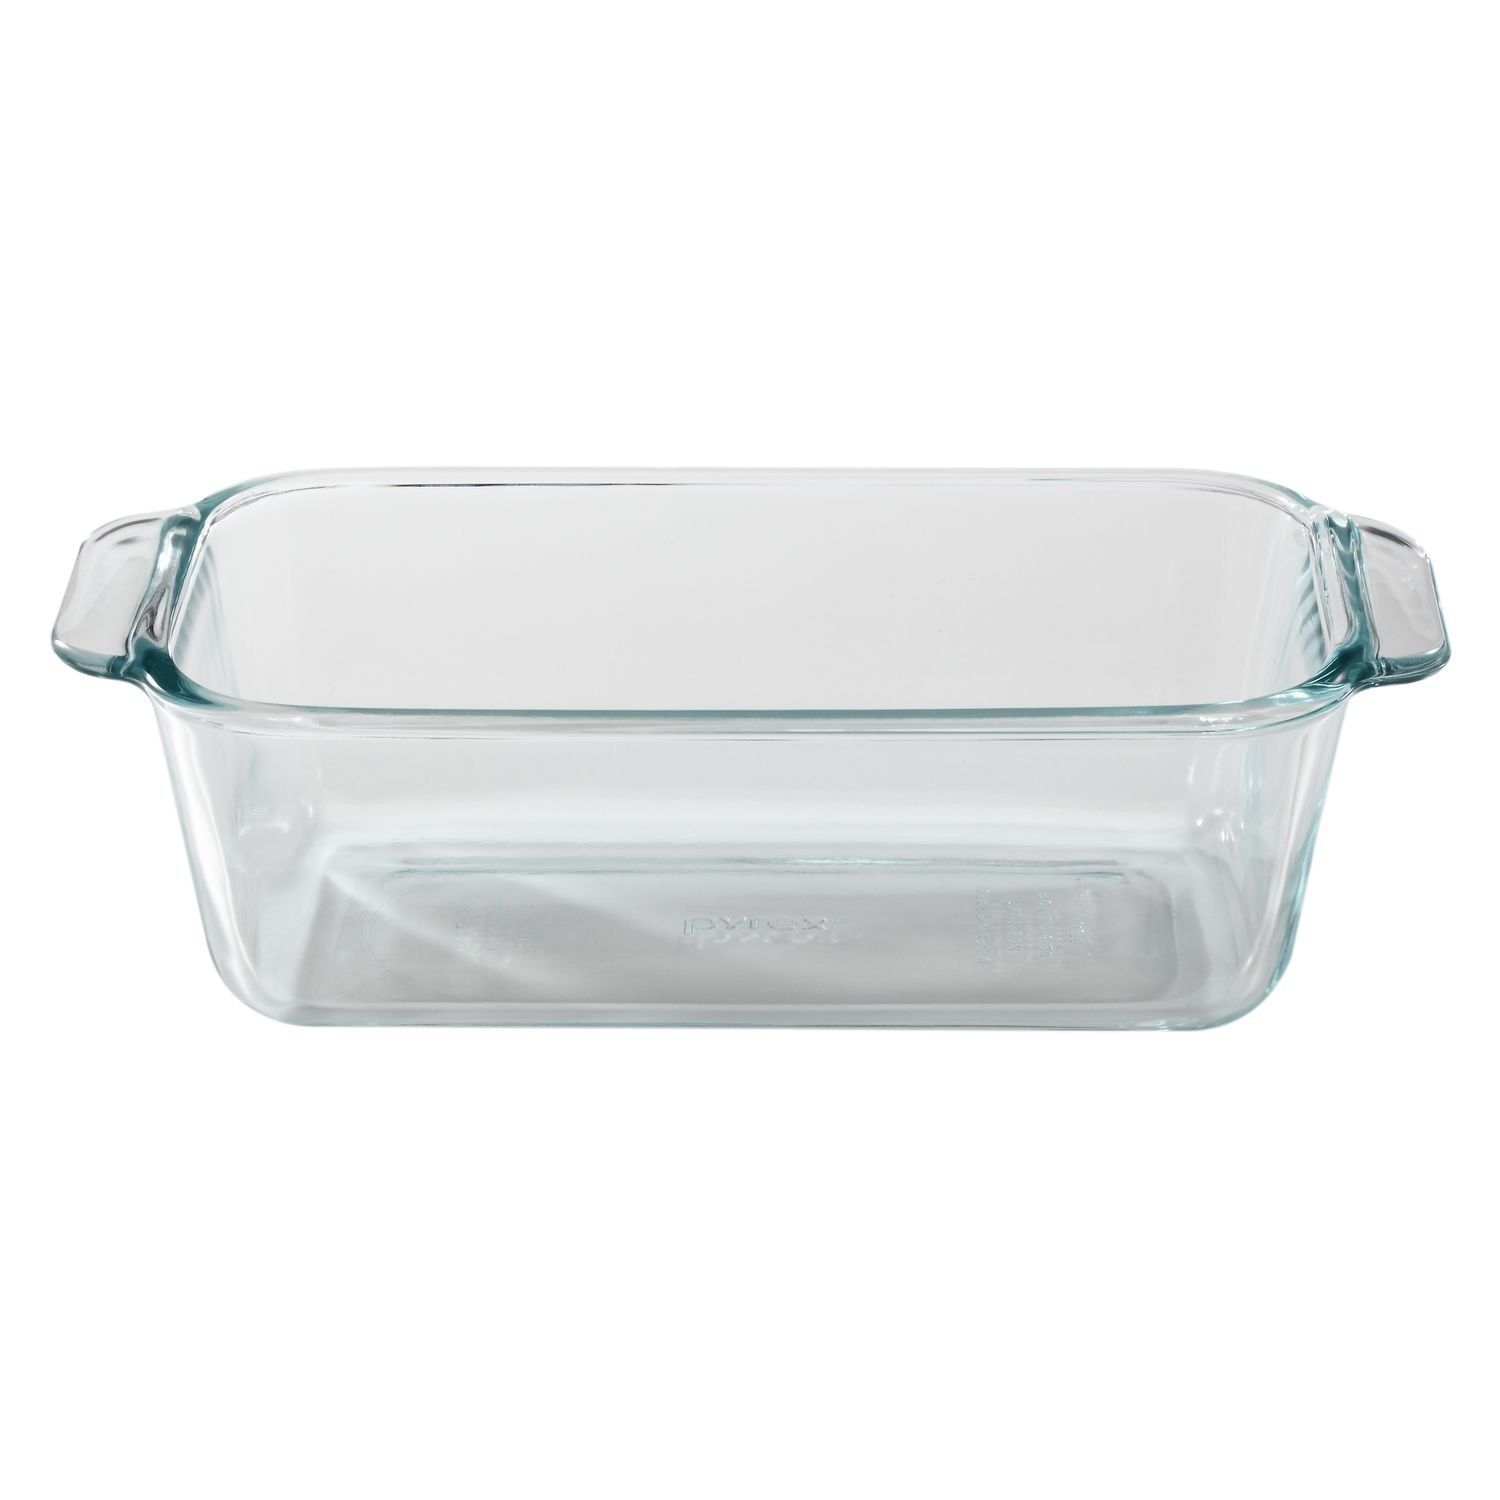 Pyrex Basics 1 5 Quart Loaf Pan Glass Set Of 3 Buy Now Before